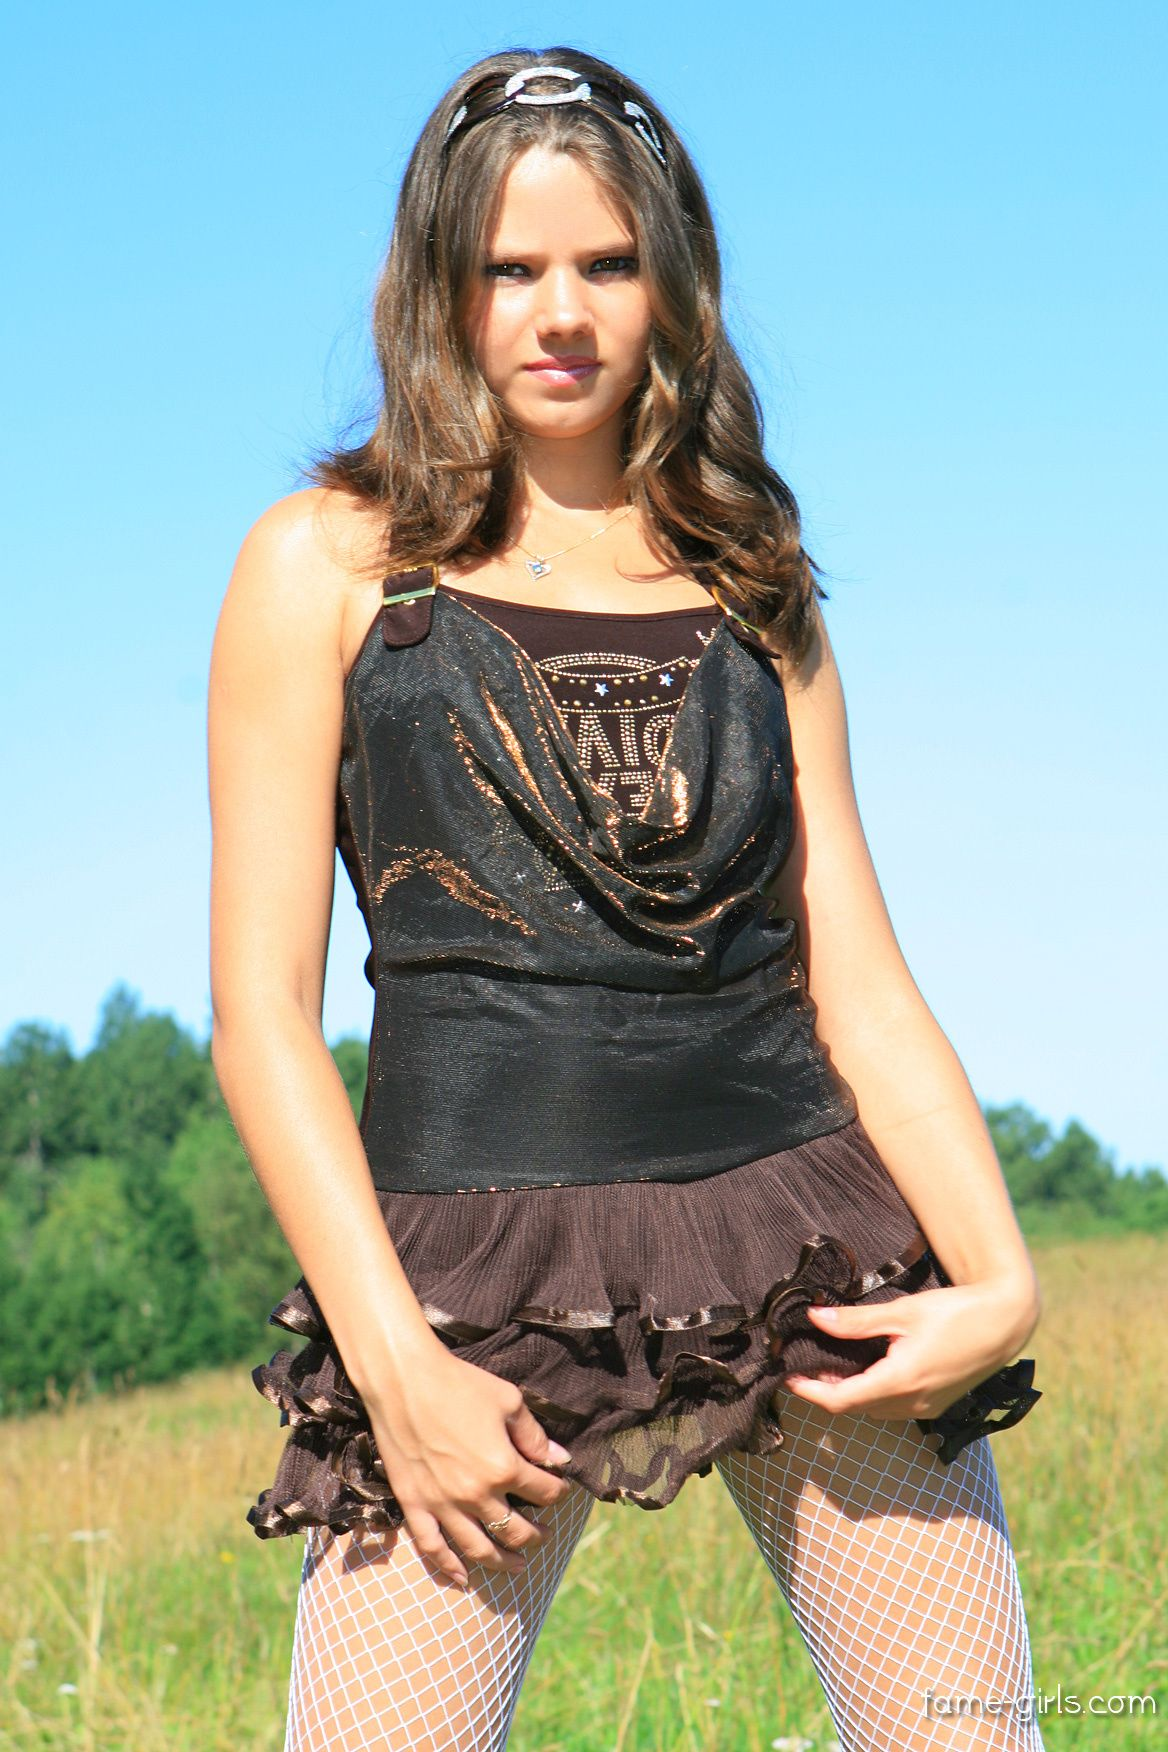 sandraorlow Sandra Orlow, pretty model in cute outfit